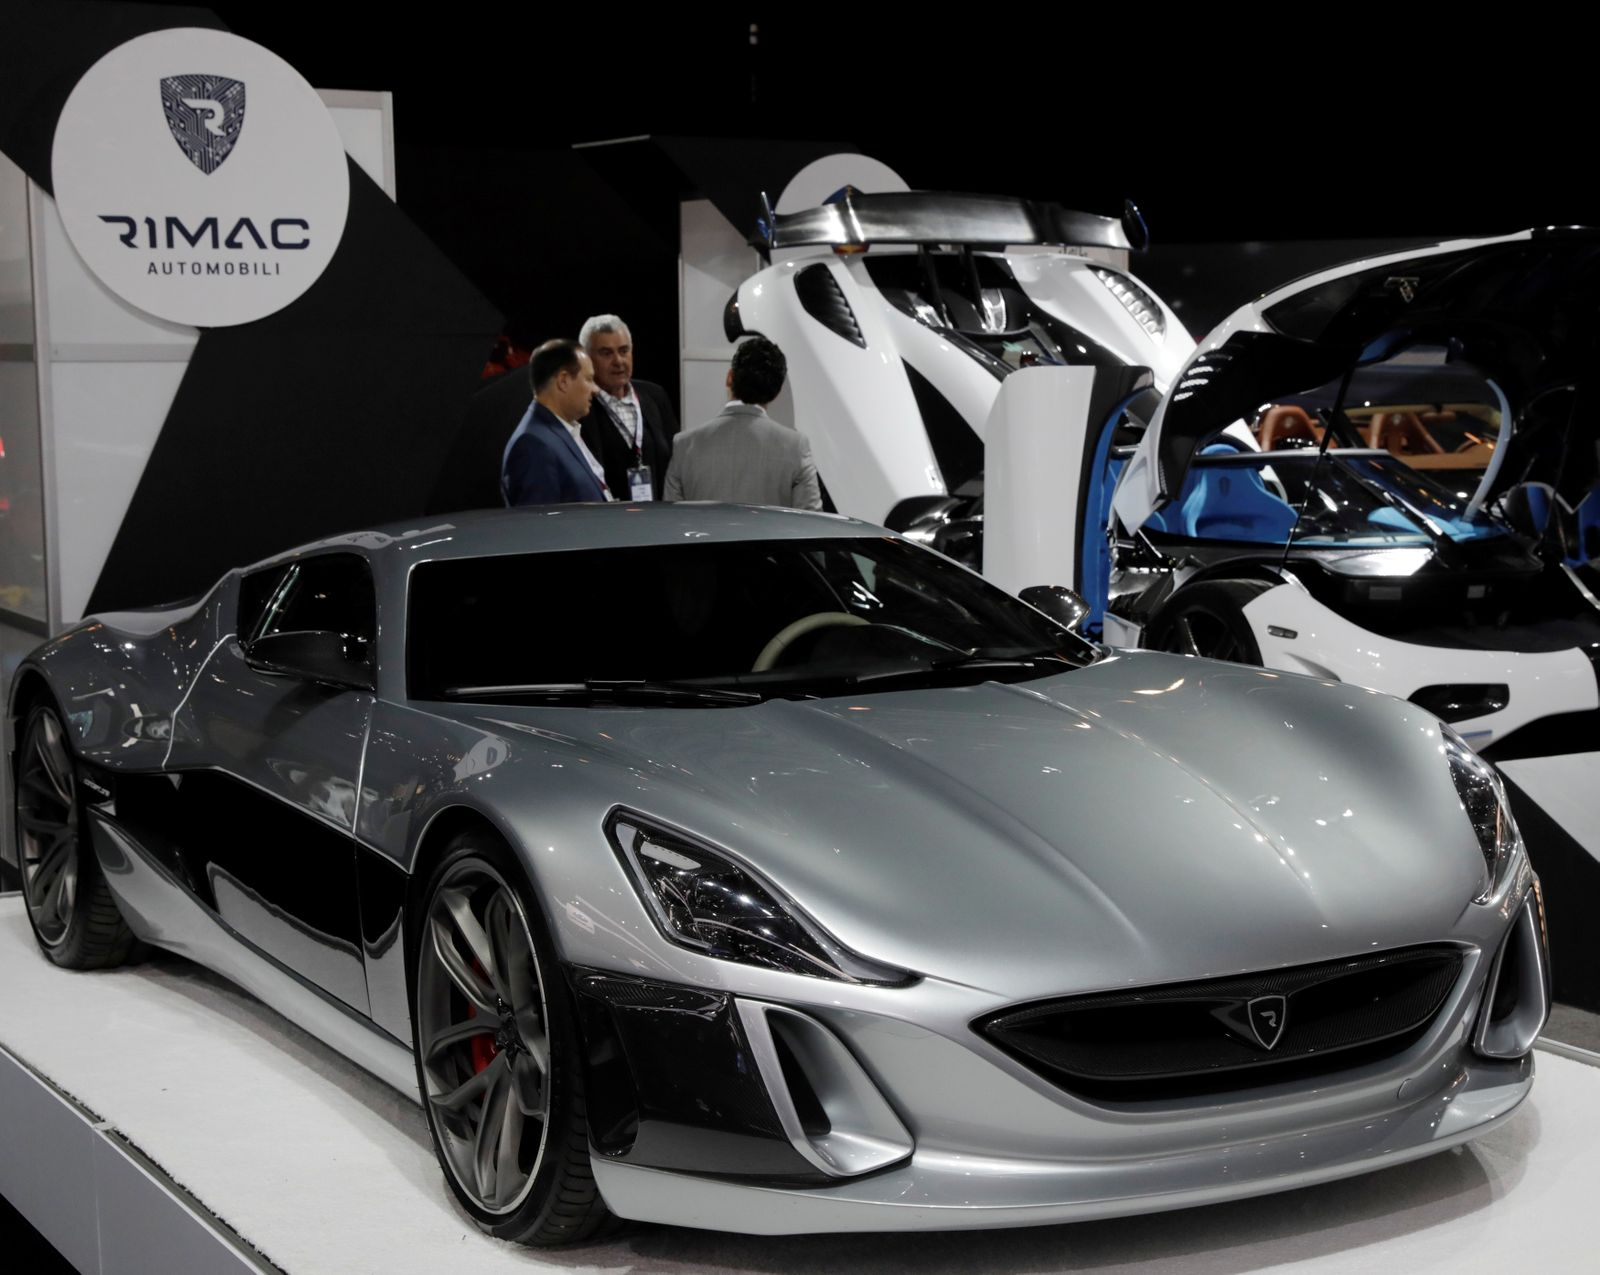 FILE PHOTO: Rimac Automobili Concept_One electric supercar is displayed at the 2017 New York International Auto Show in New York, U.S.